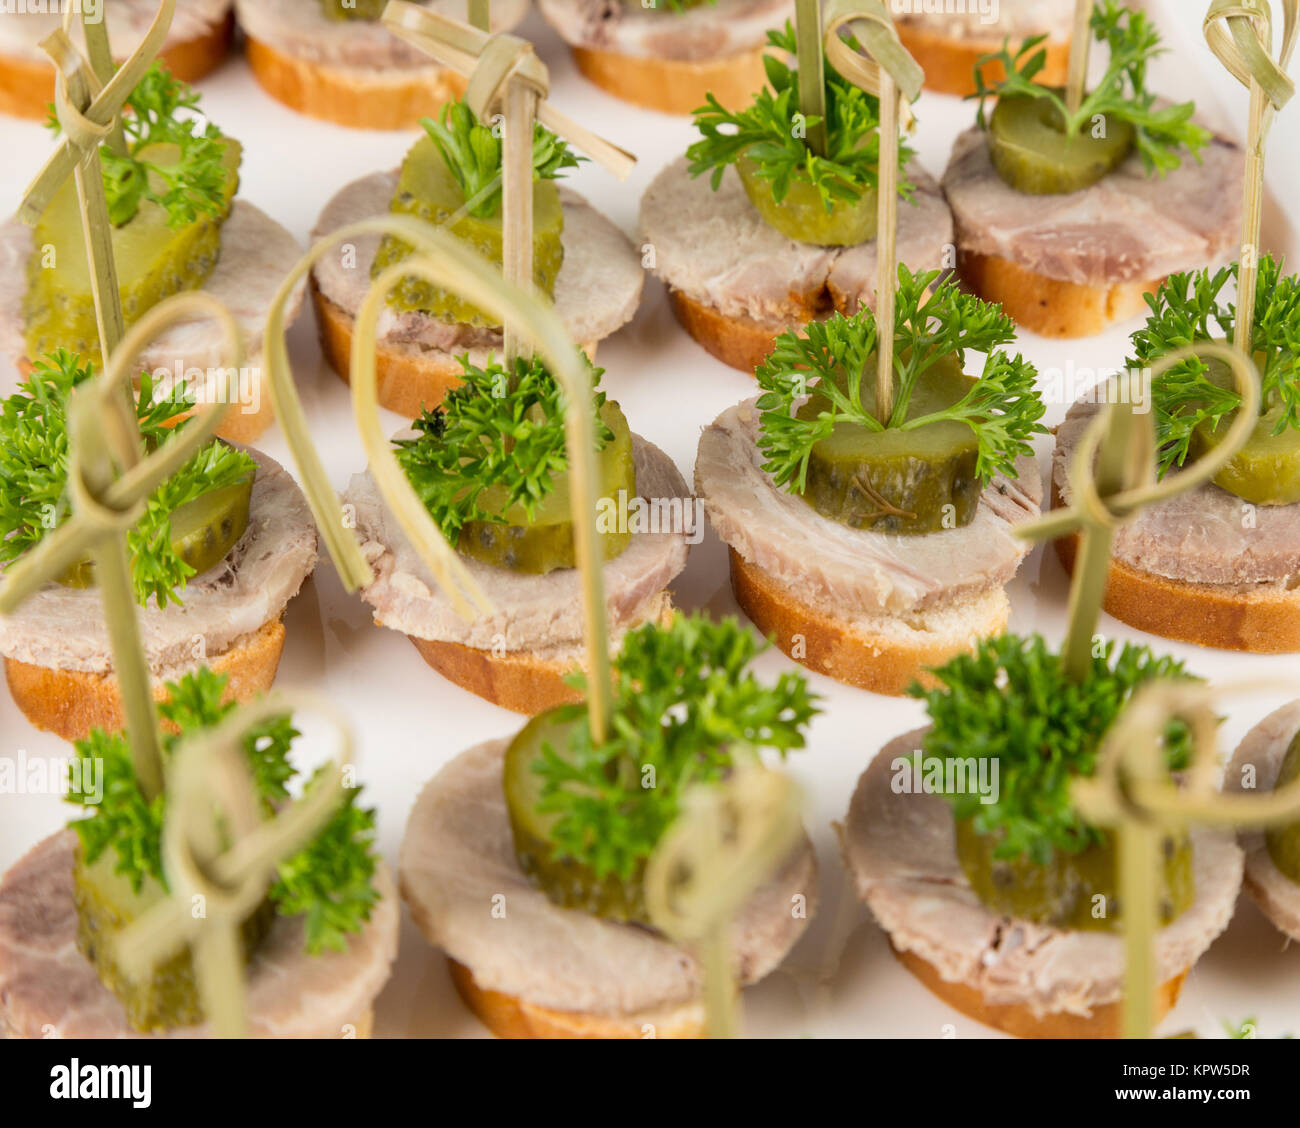 closeup canapes and snacks for catering - Stock Image